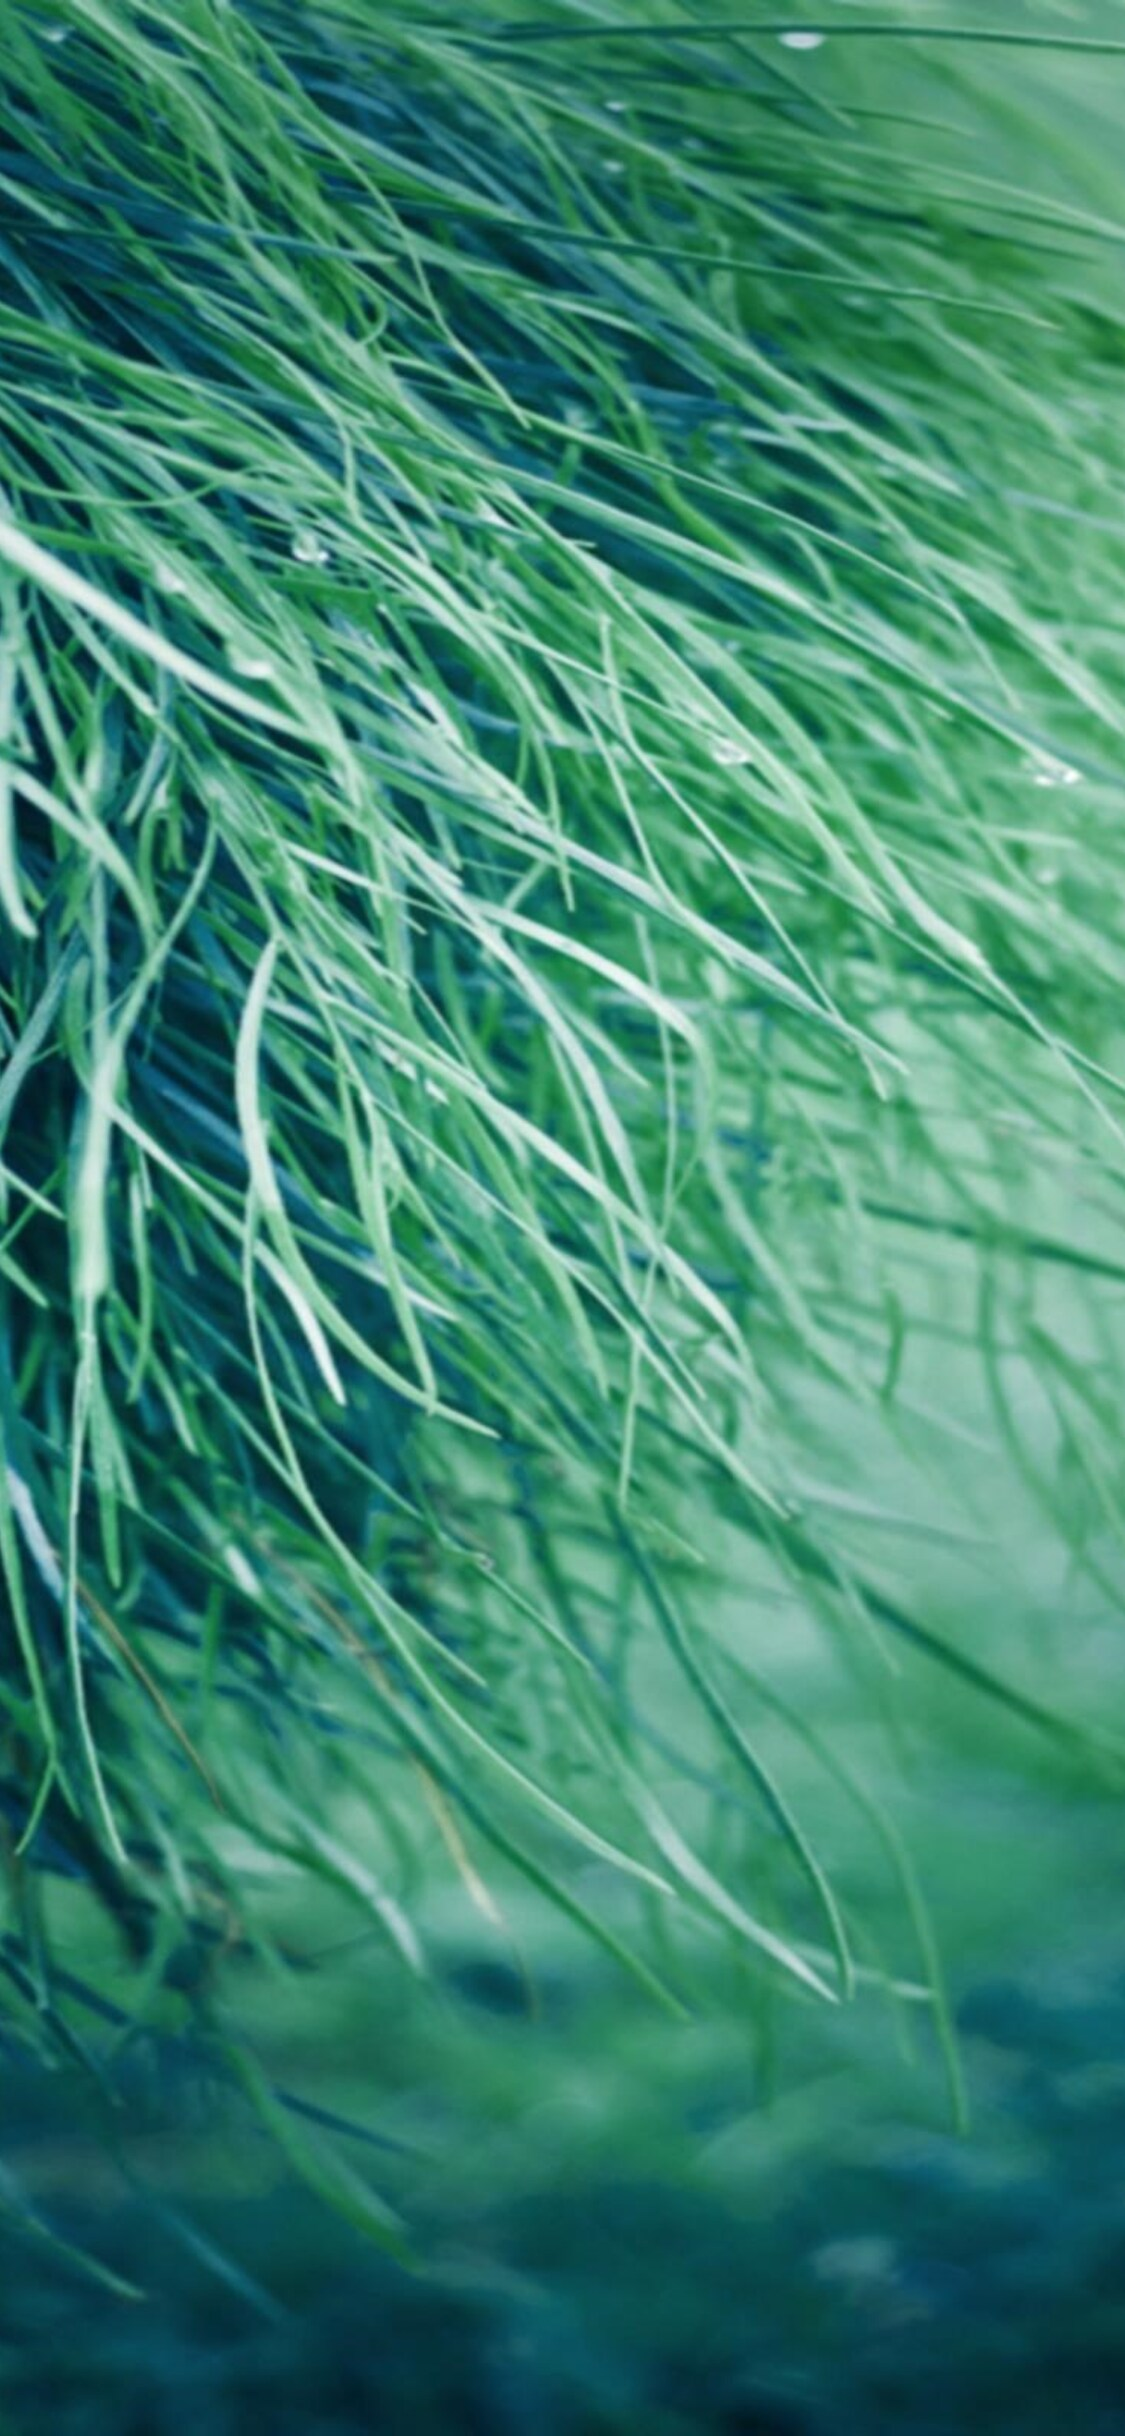 1125x2436 Pure Grass Iphone Xs Iphone 10 Iphone X Hd 4k